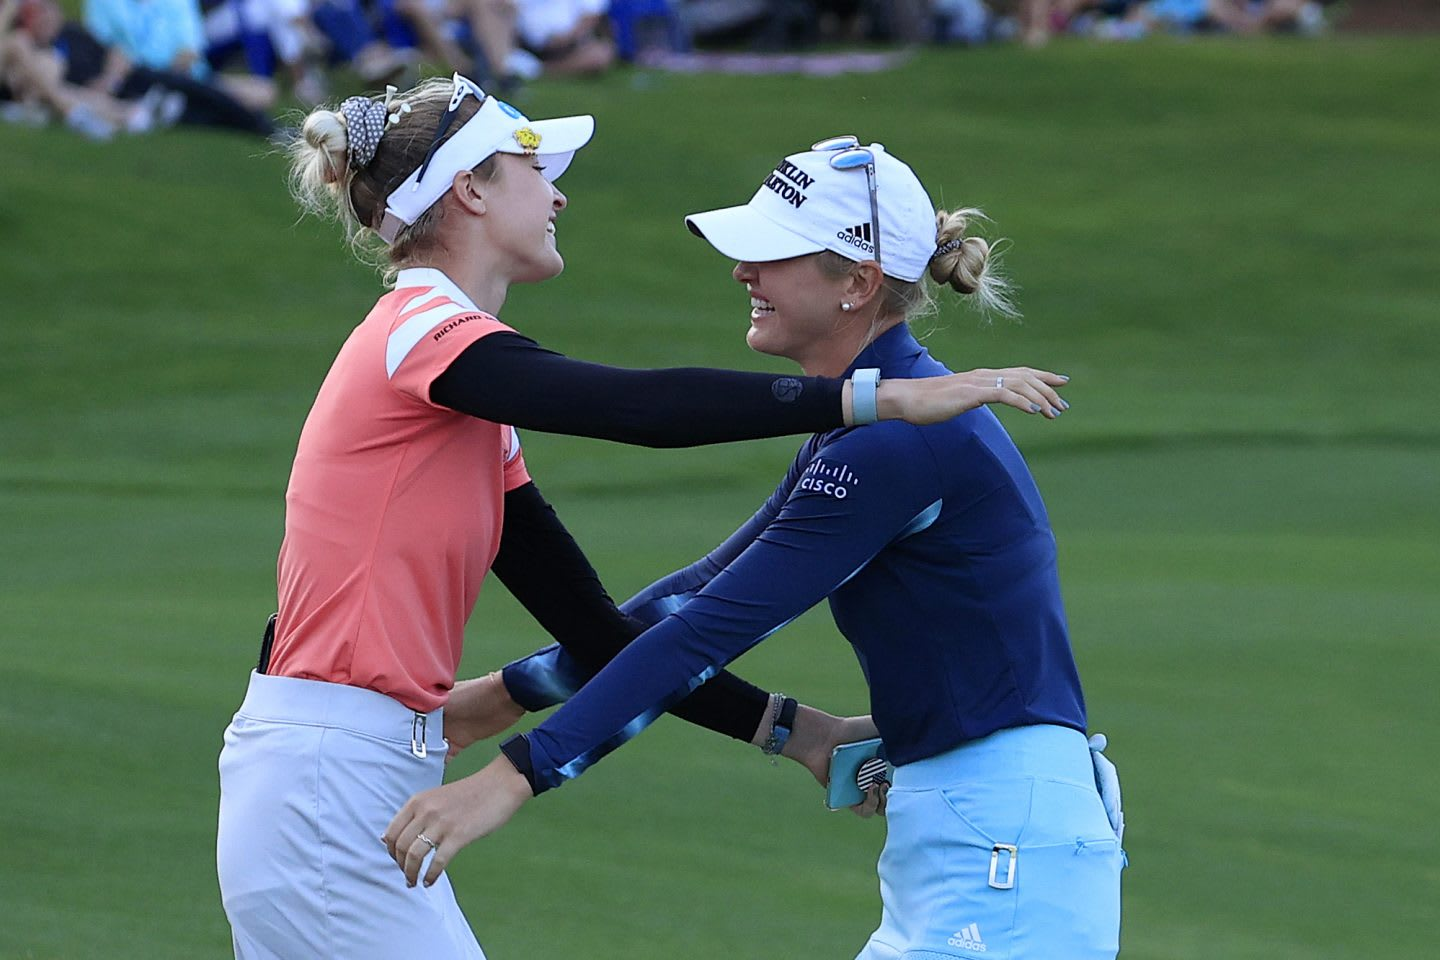 Nelly and Jessica Korda hugging each other. Golf, siblings, family support, Sebastian Korda